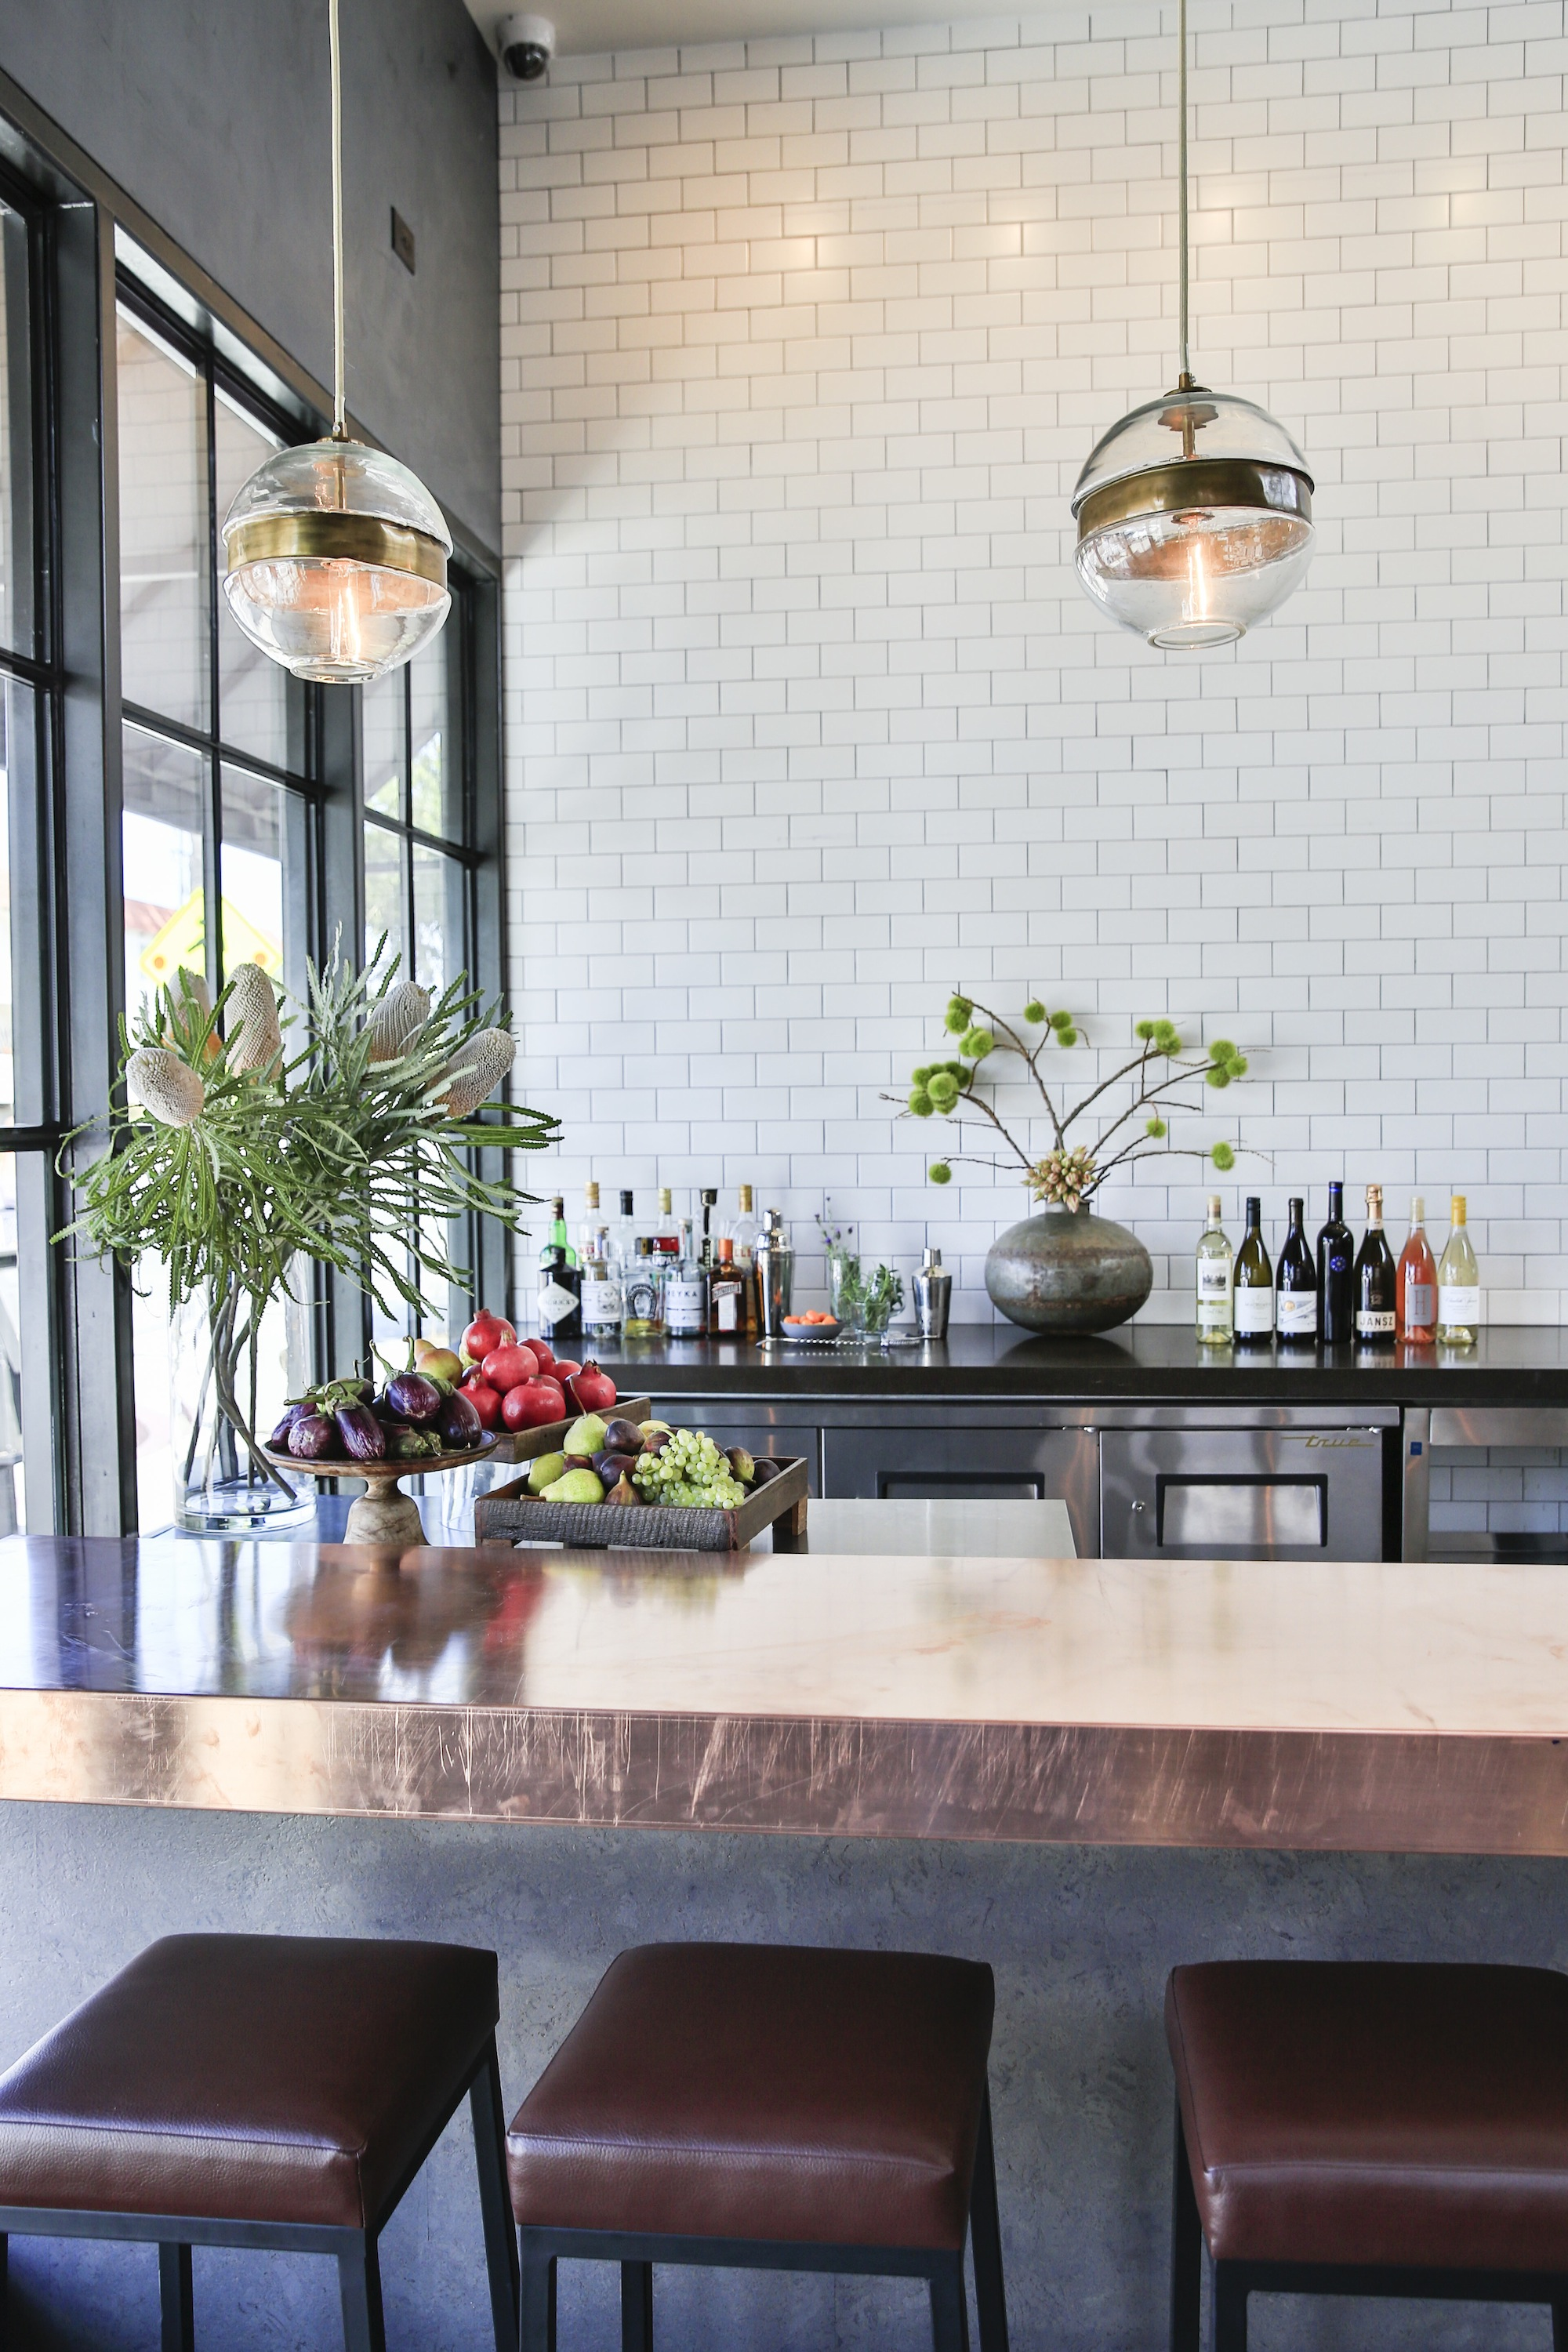 Where-To-eat-Local-Kitchen-1